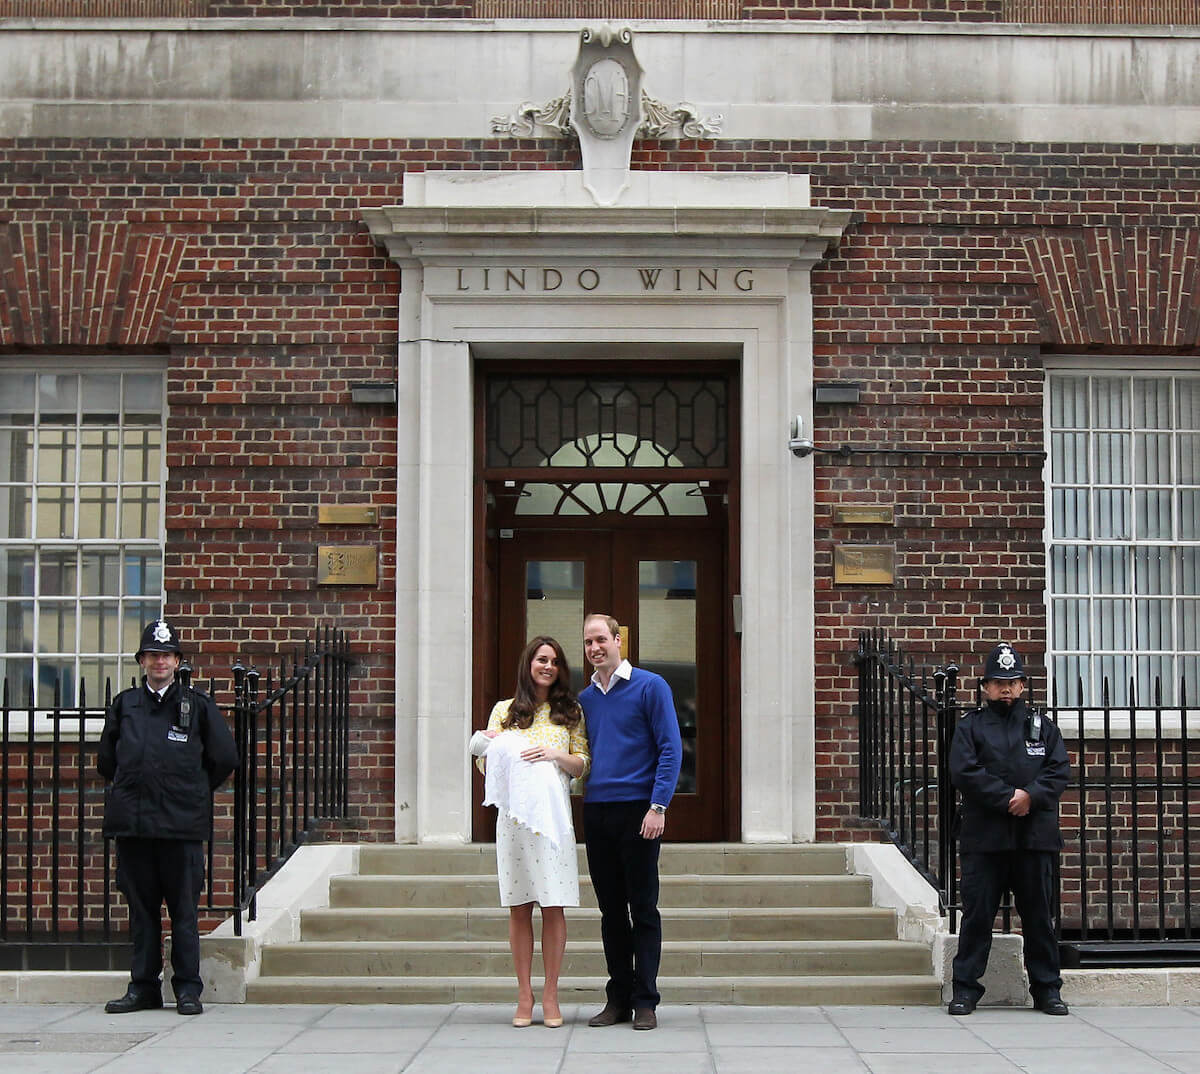 private maternity the lindo wing.jpg